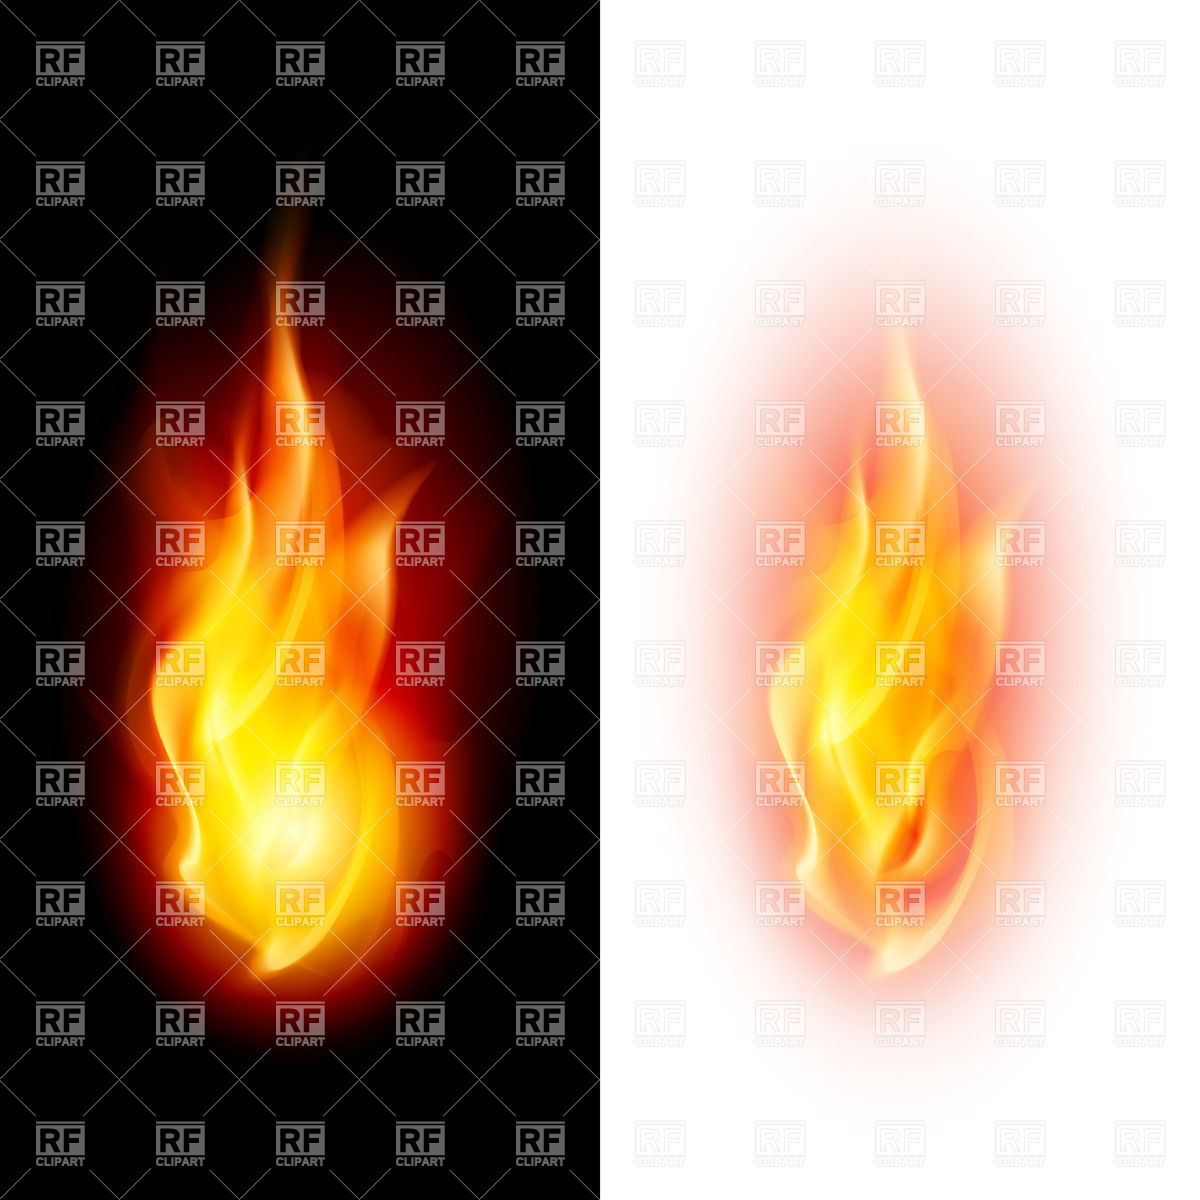 Free clipart flames with white background.